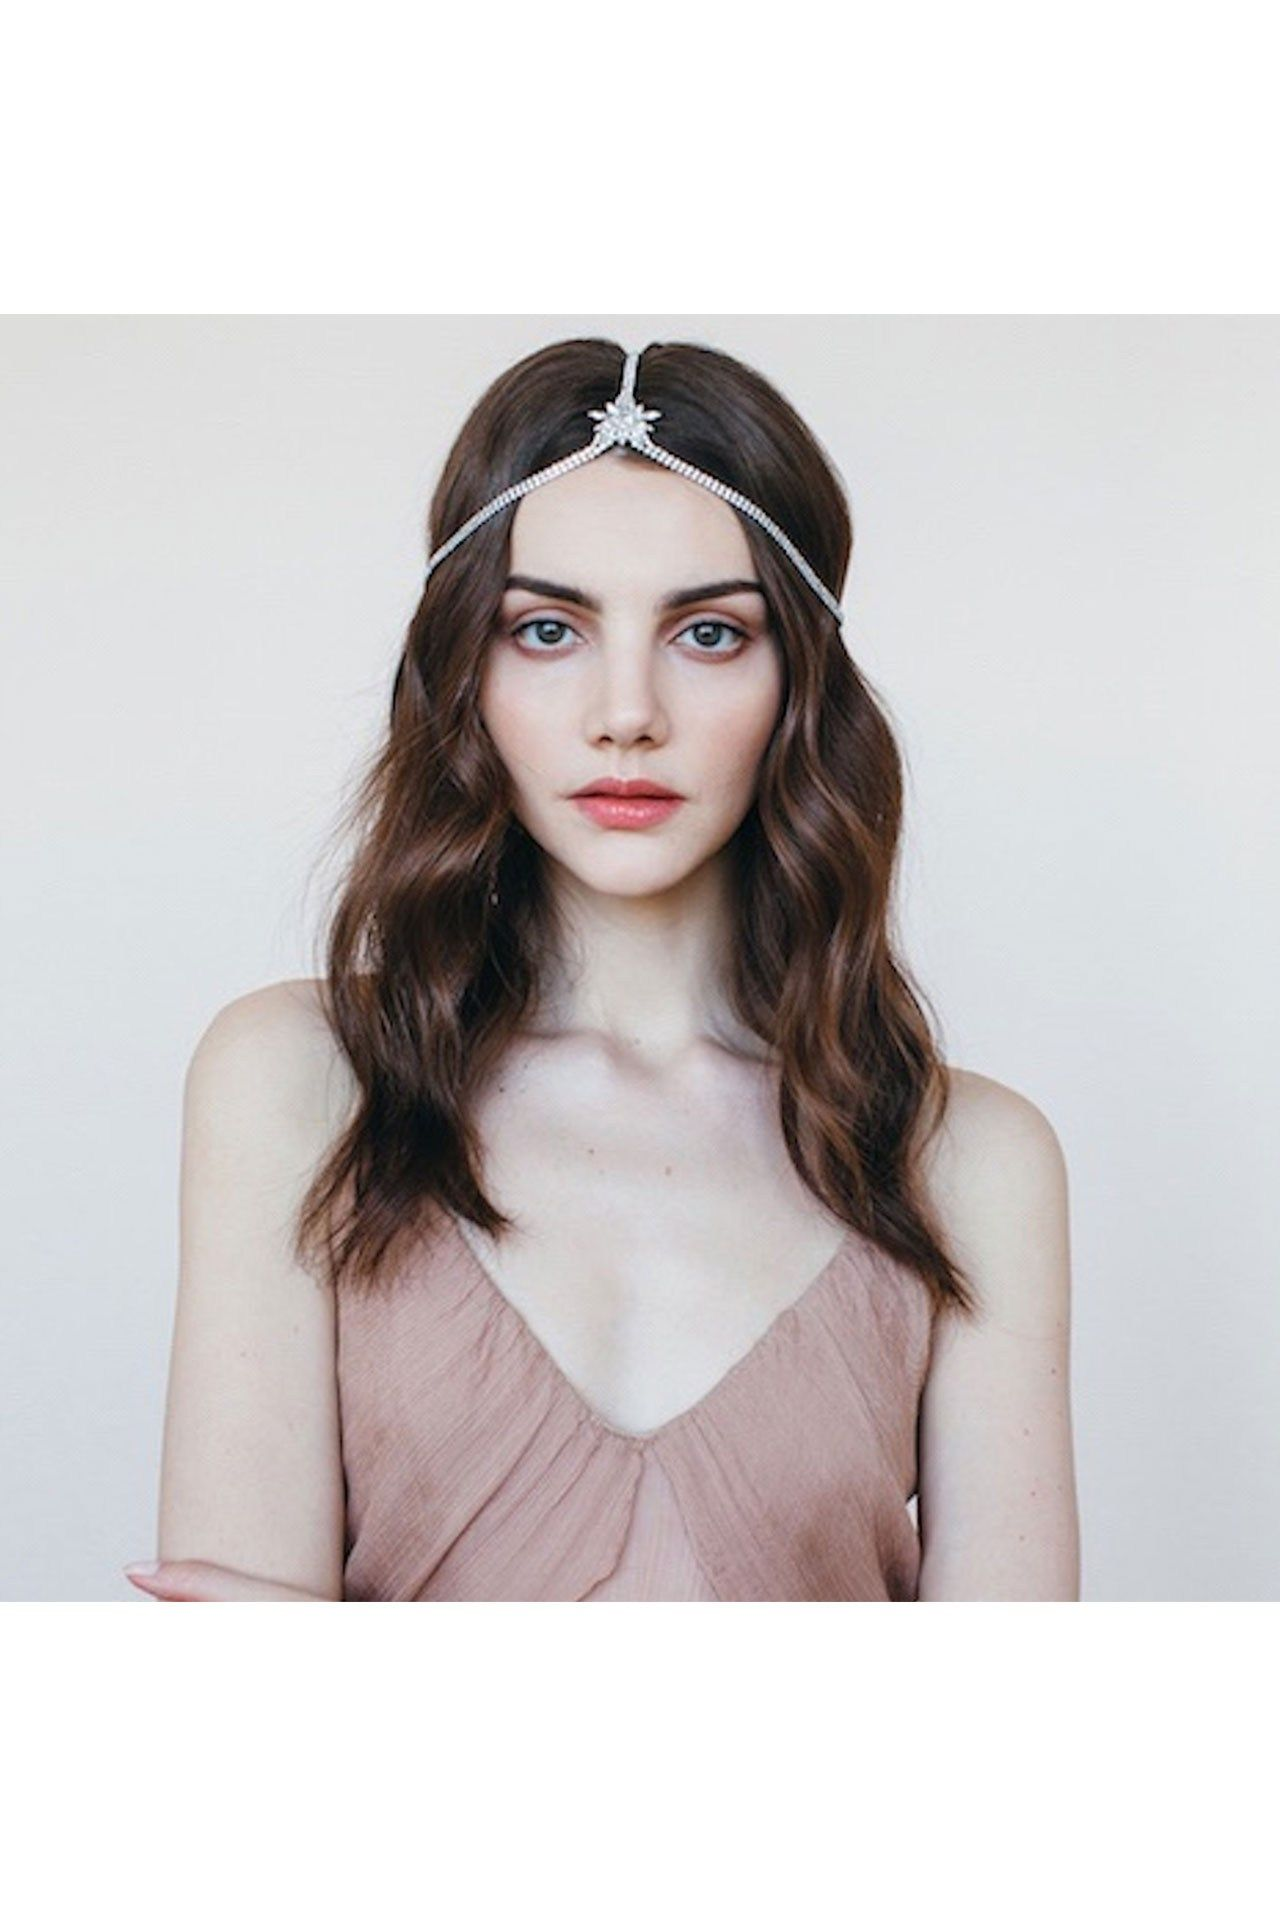 63 wedding hair accessory ideas | in vogue hair nz | wedding